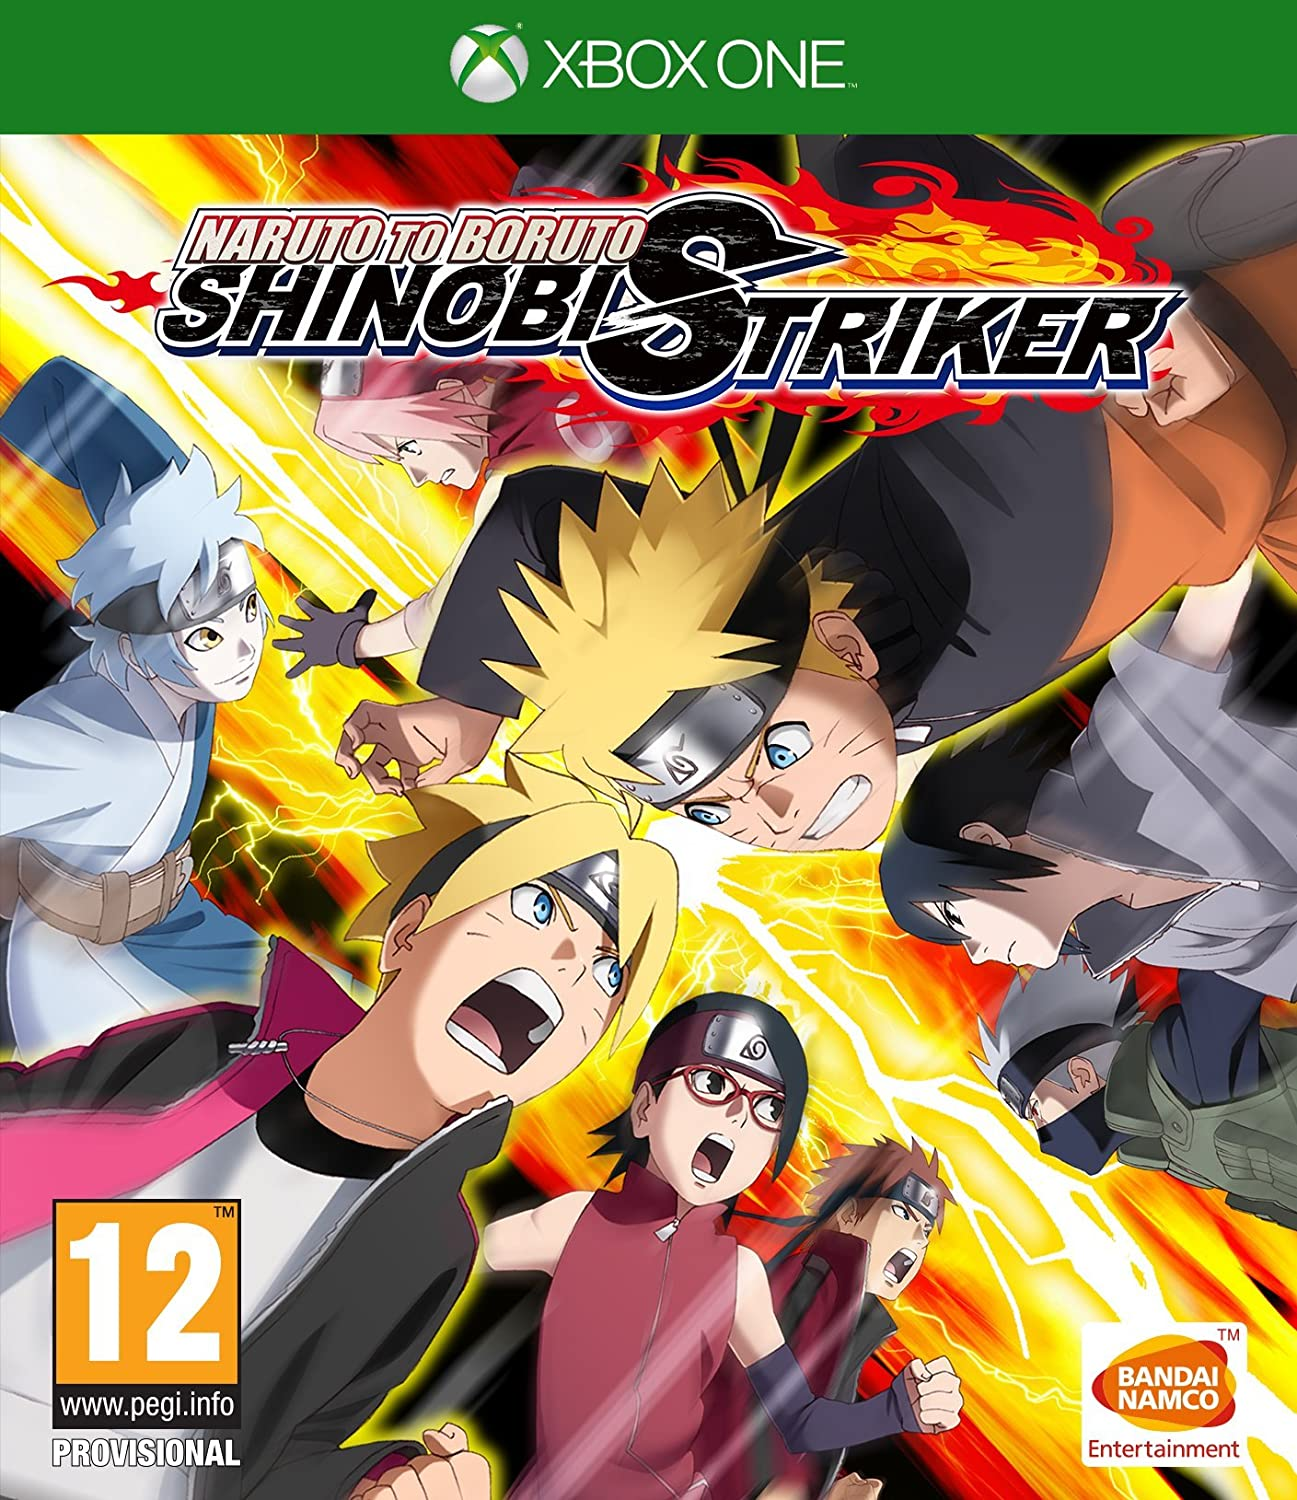 Amazon.com: Naruto to Boruto: Shinobi Striker (Xbox One ...